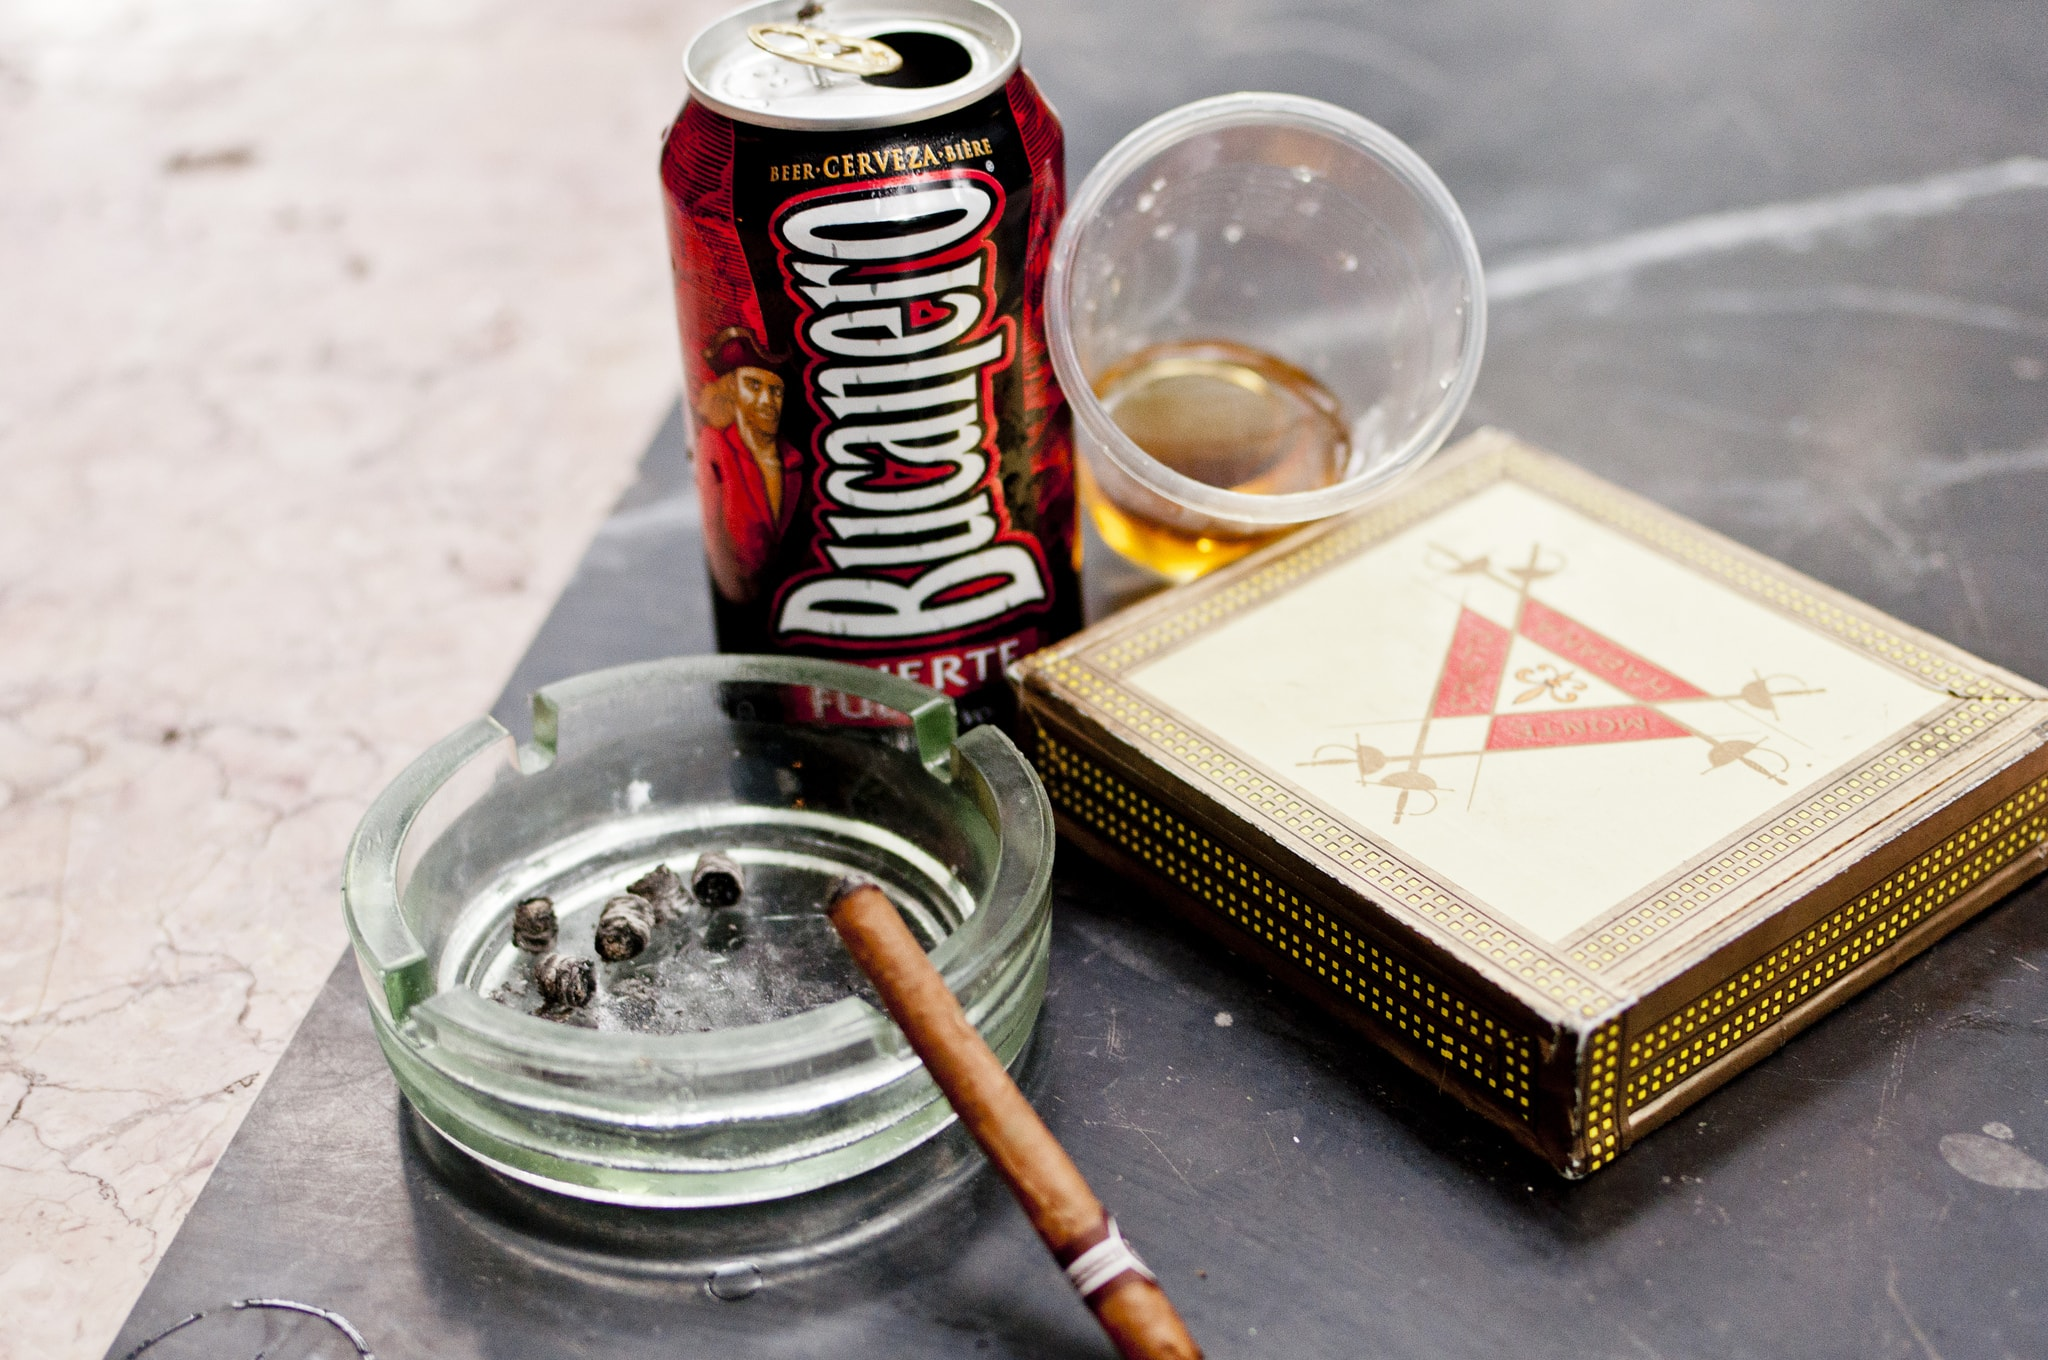 Cigar and rum bring back from Cuba